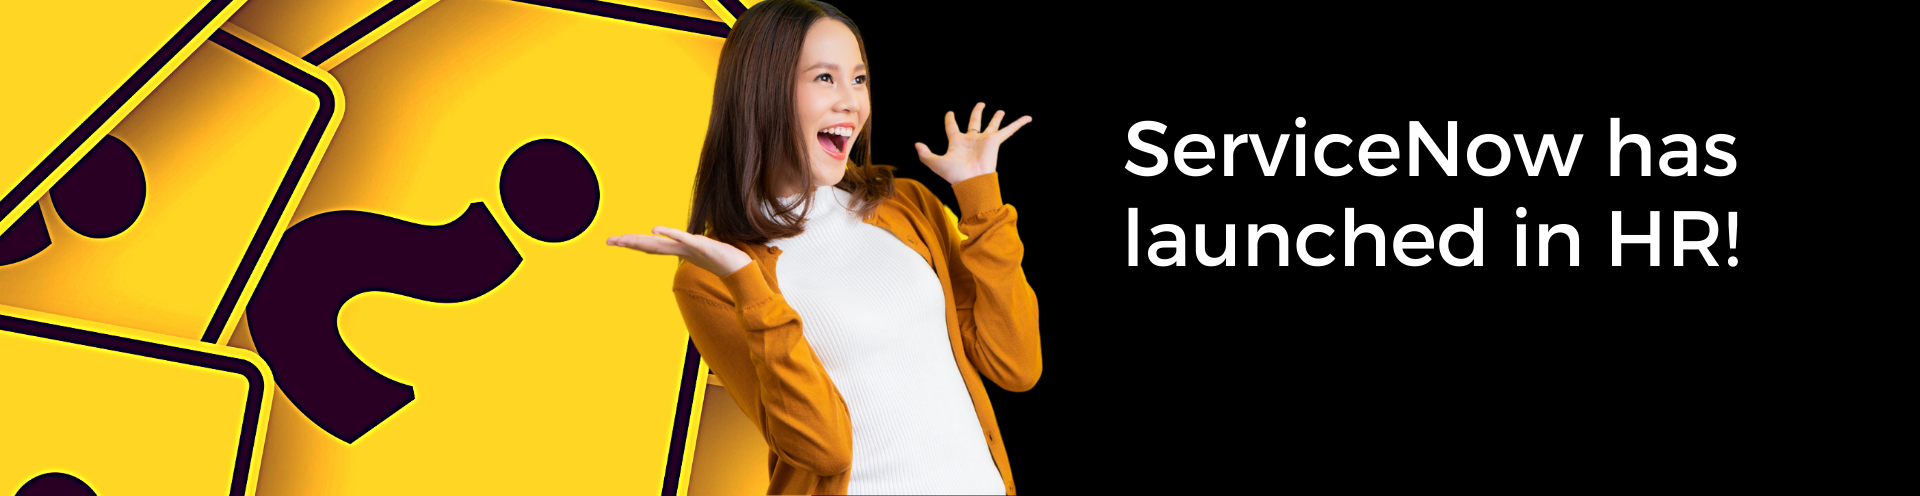 Submit a ServiceNow ticket